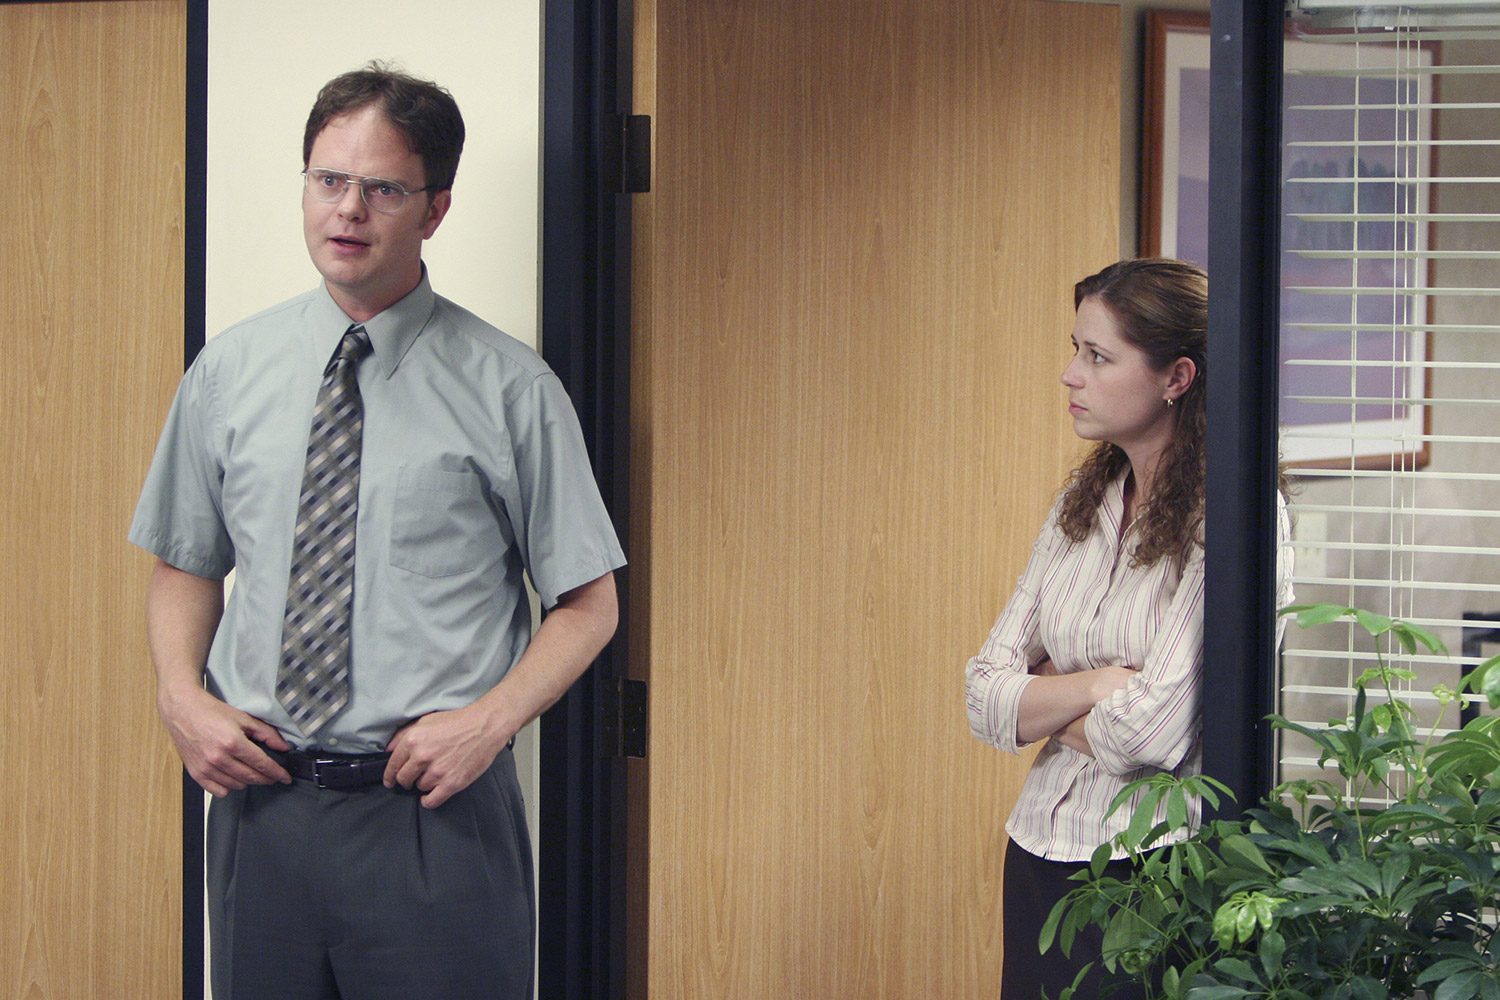 Pam and Dwight the office